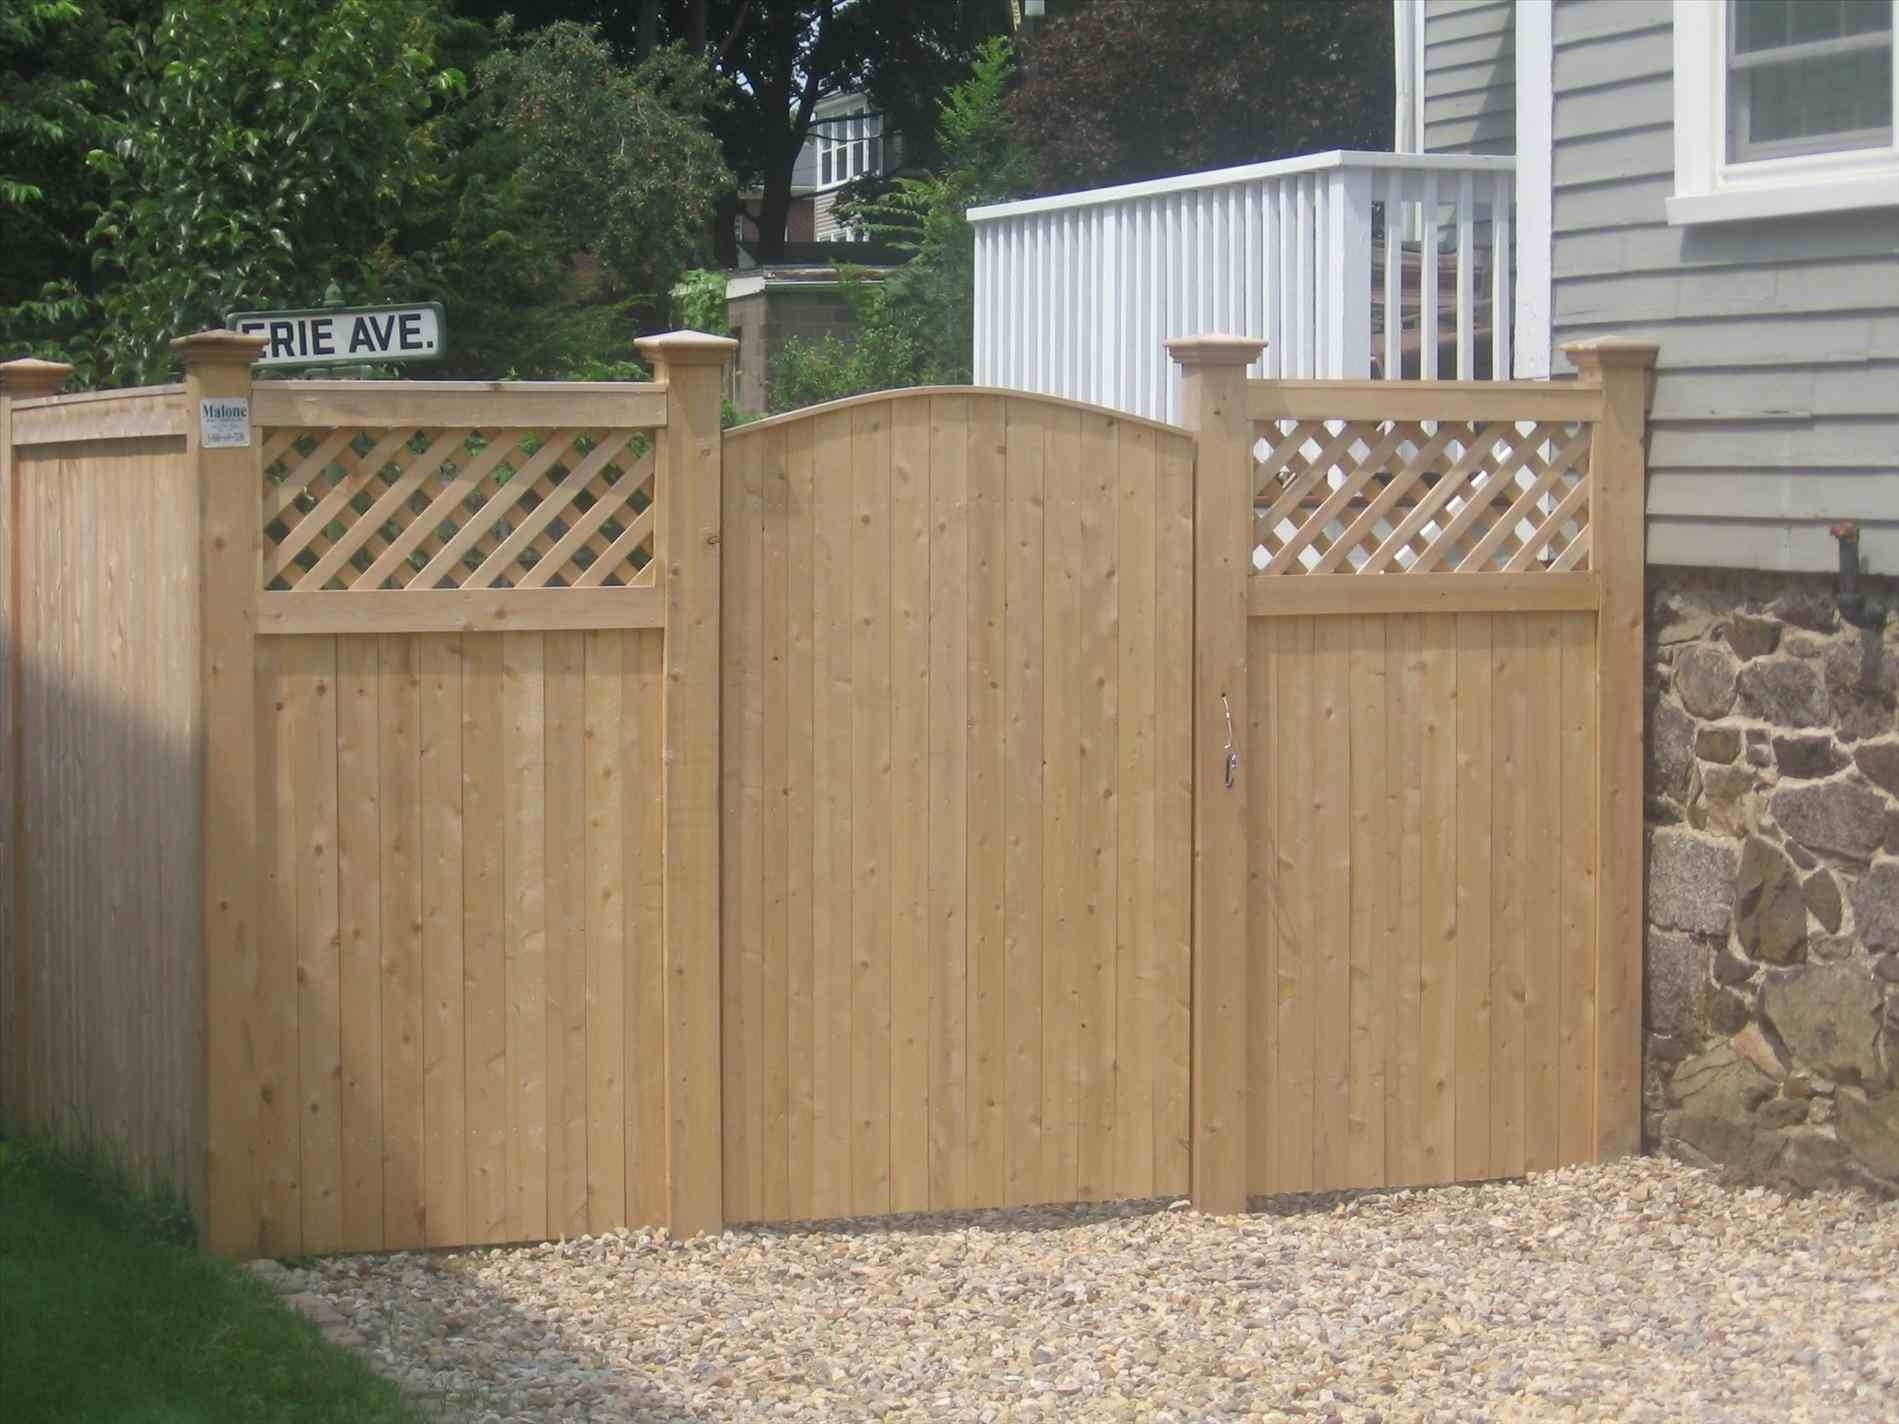 How To Repair A Picket Fence Gate Madison Art Center Design